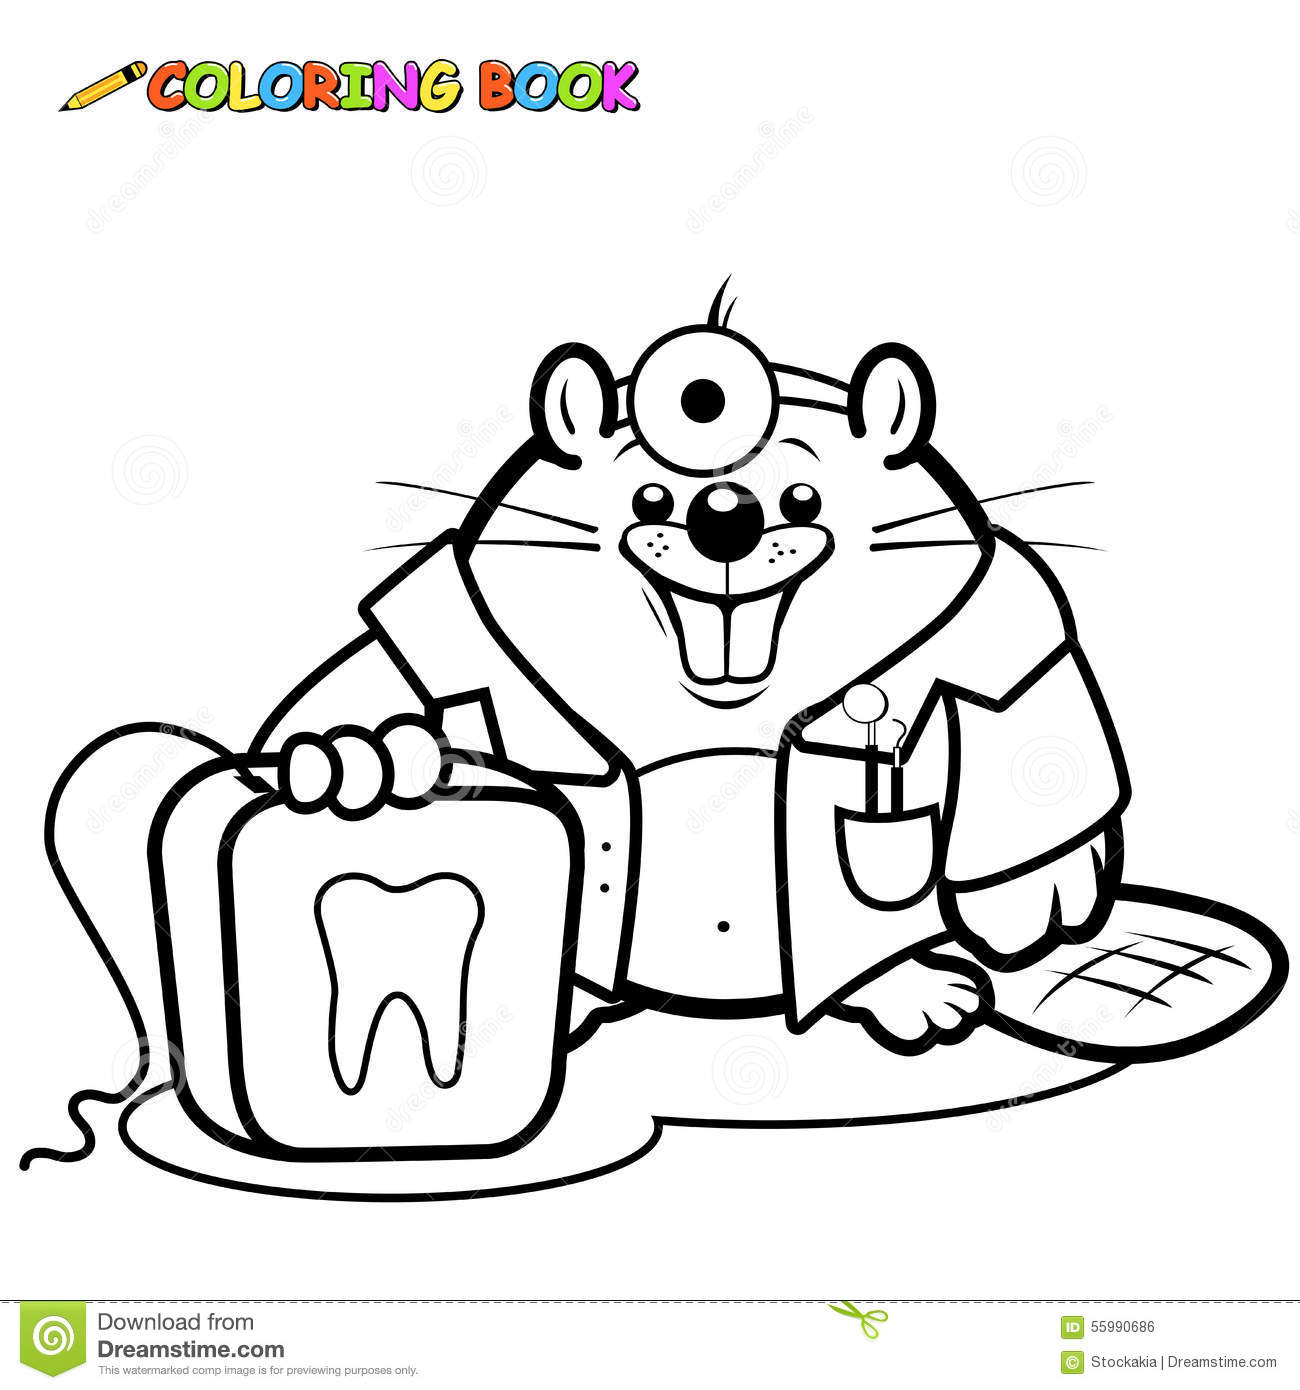 Childrens dental coloring pages - Beaver Dentist Holding A Dental Floss Coloring Page Royalty Free Stock Image